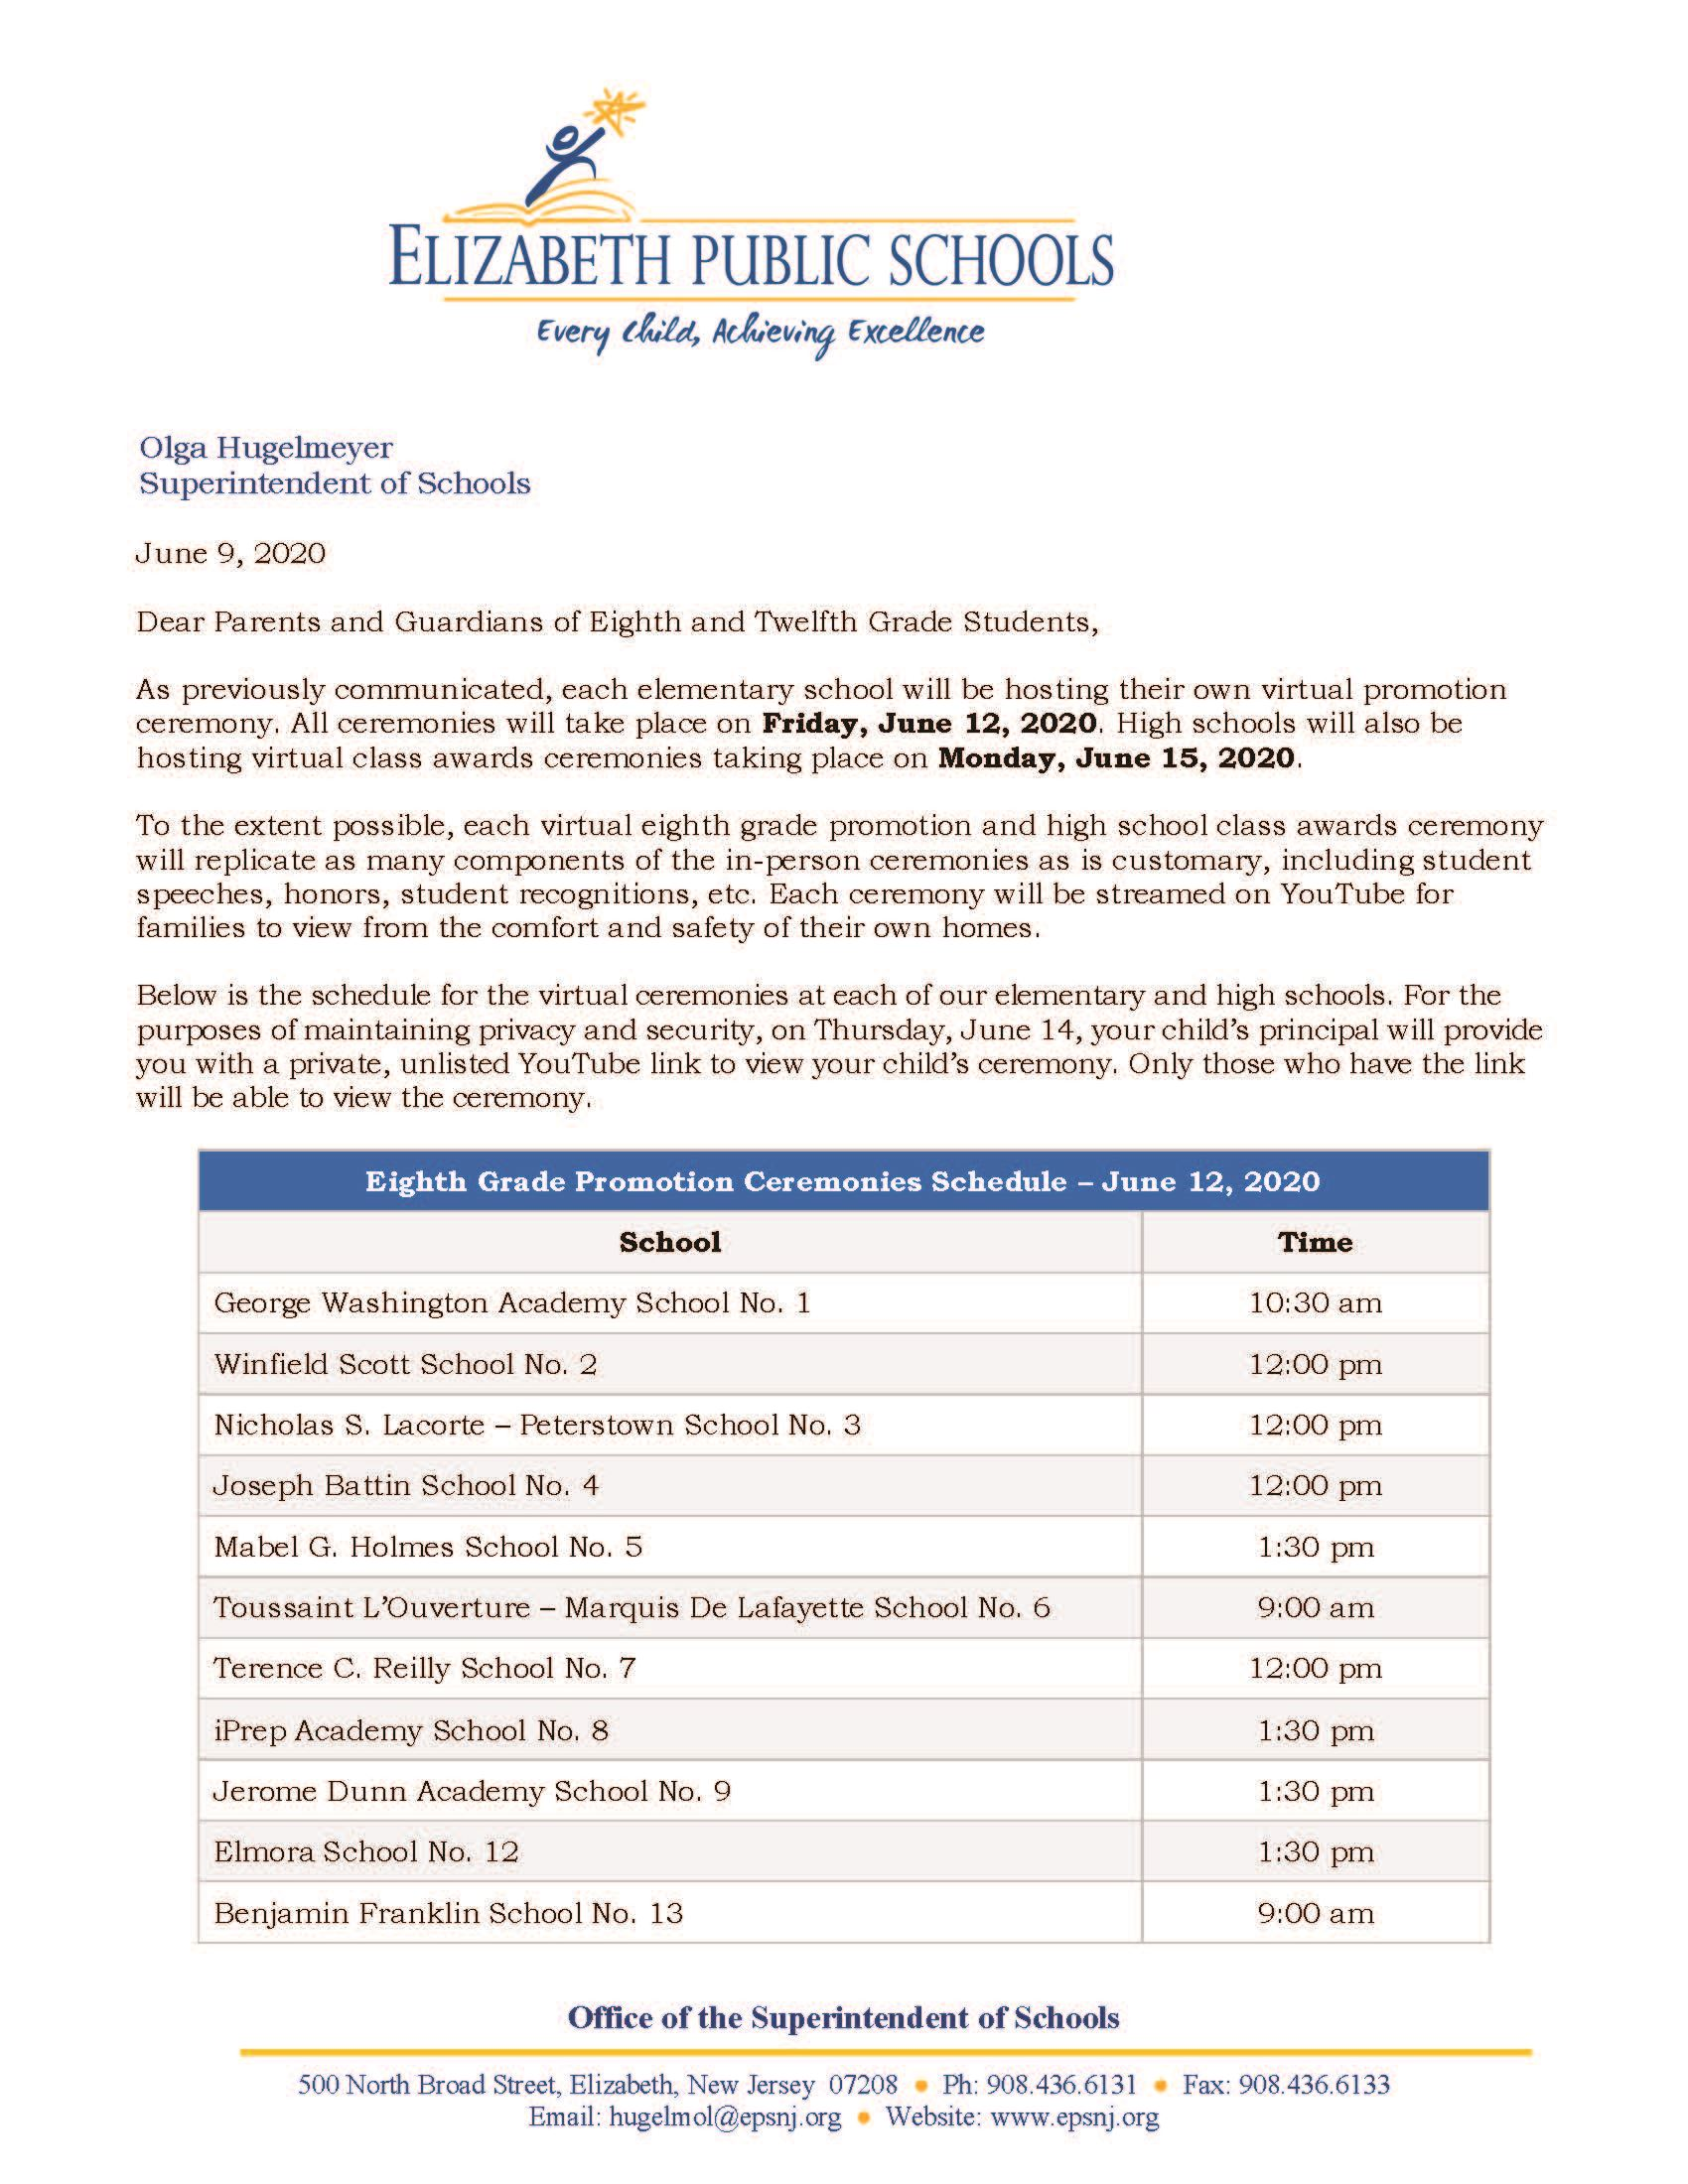 Letter to Parents-Guardians About 8th Grade Promotion - High School Class Awards Virtual Ceremonies Schedules- 6-9-20